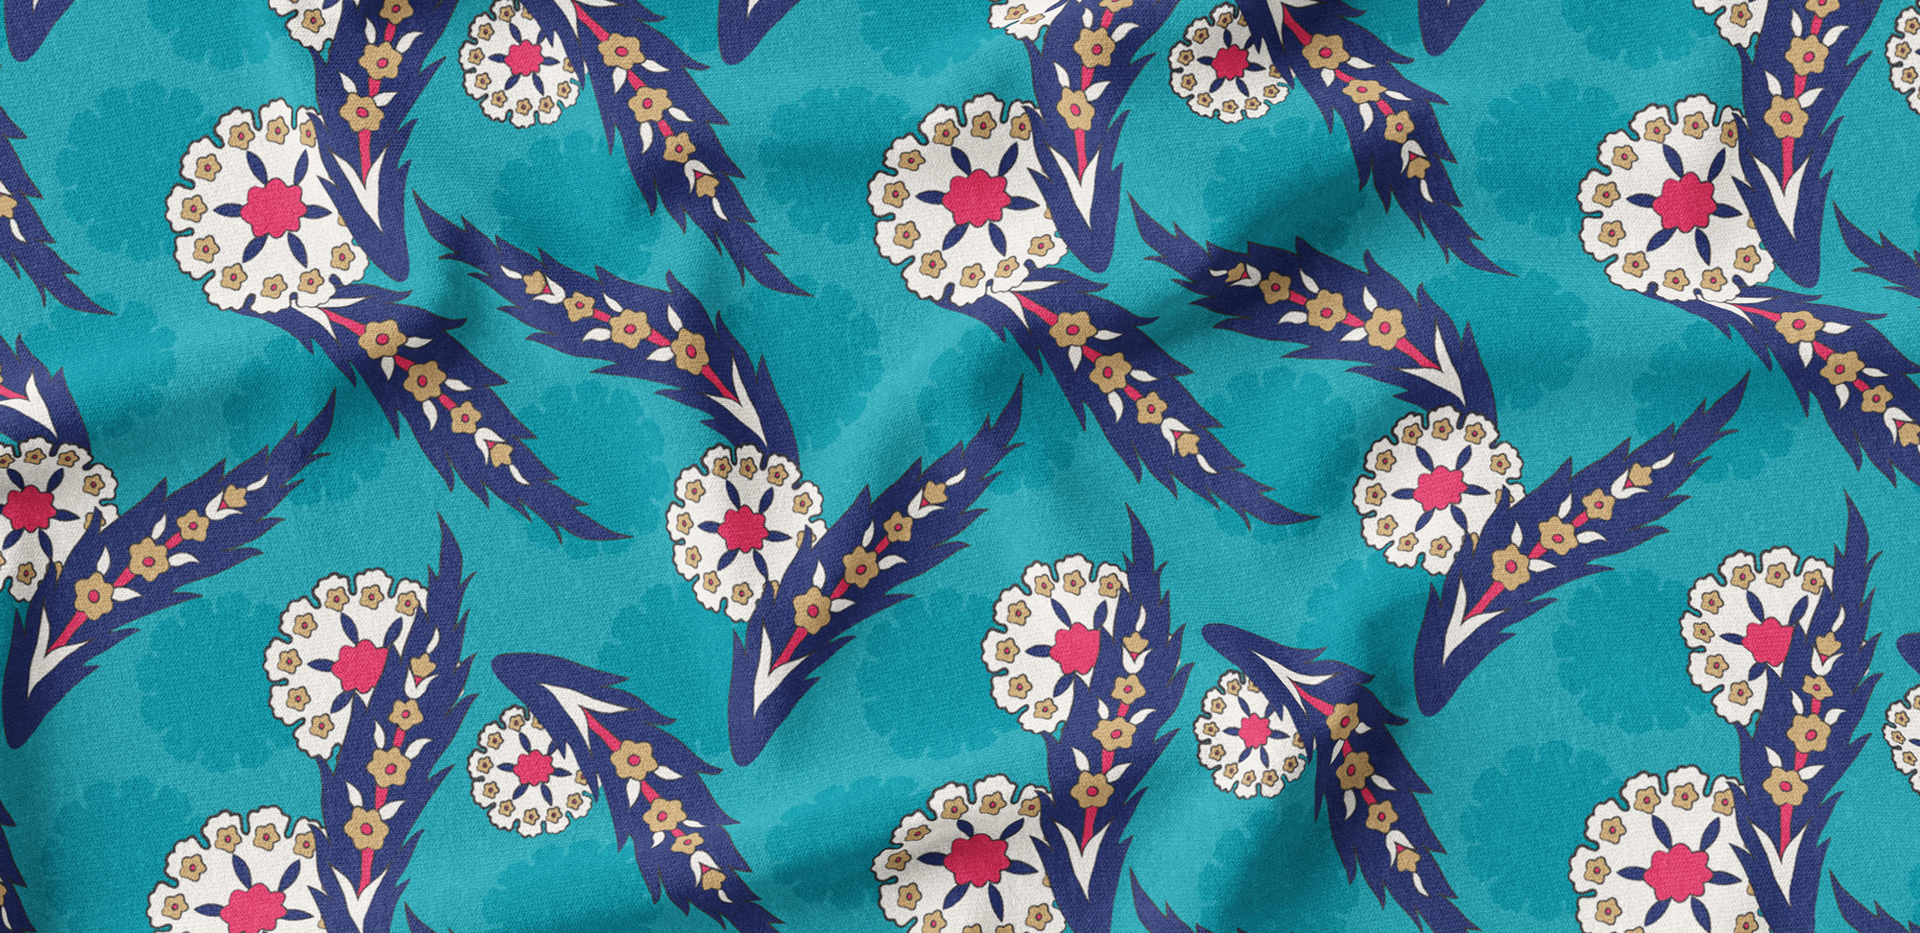 Leaves & Blossoms - Turquoise